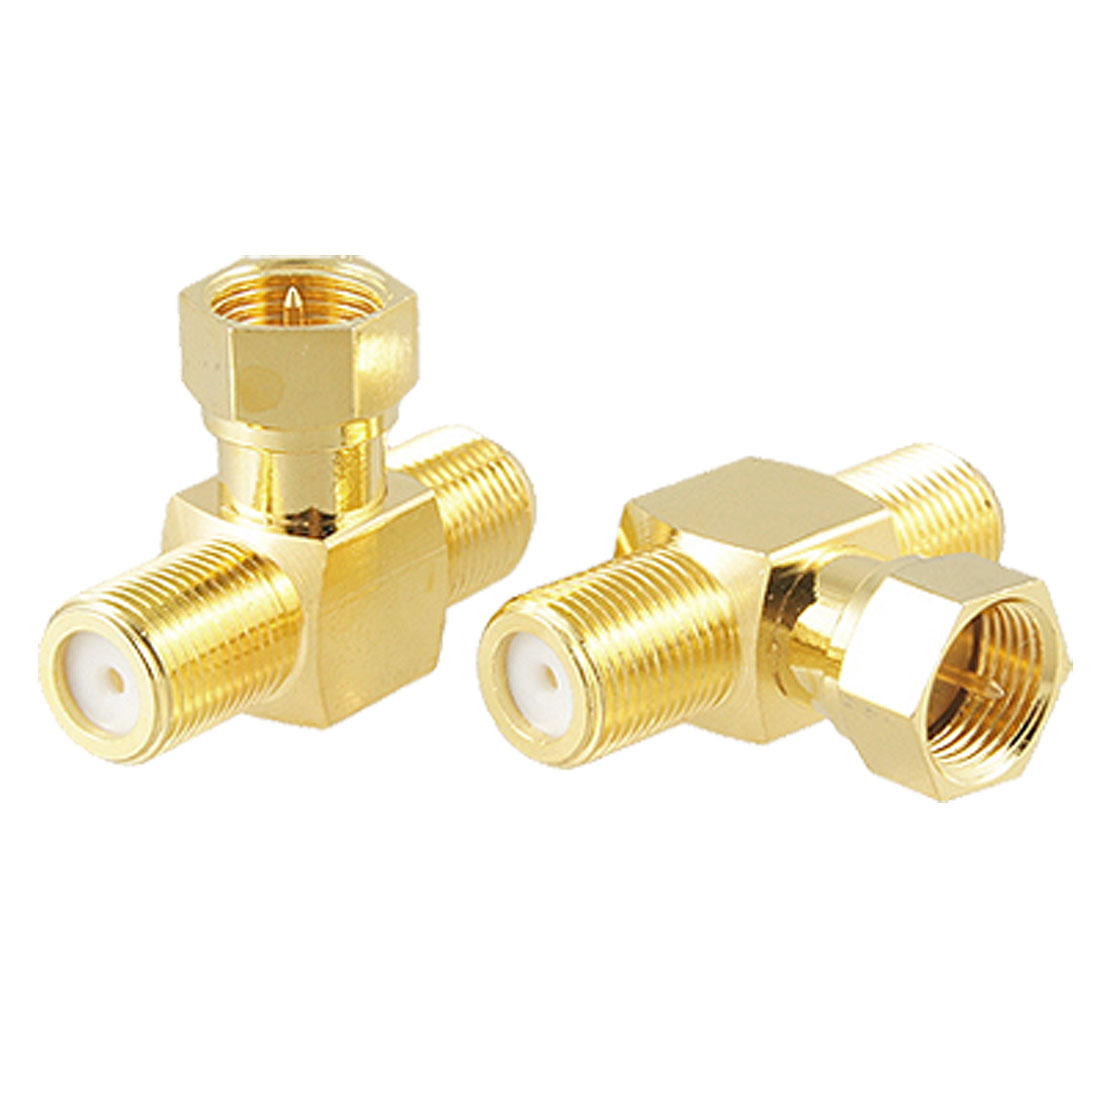 2 Pcs T shape F-Type F 1 Male to F 2 Female RF Adapter Connector Gold Tone Plated